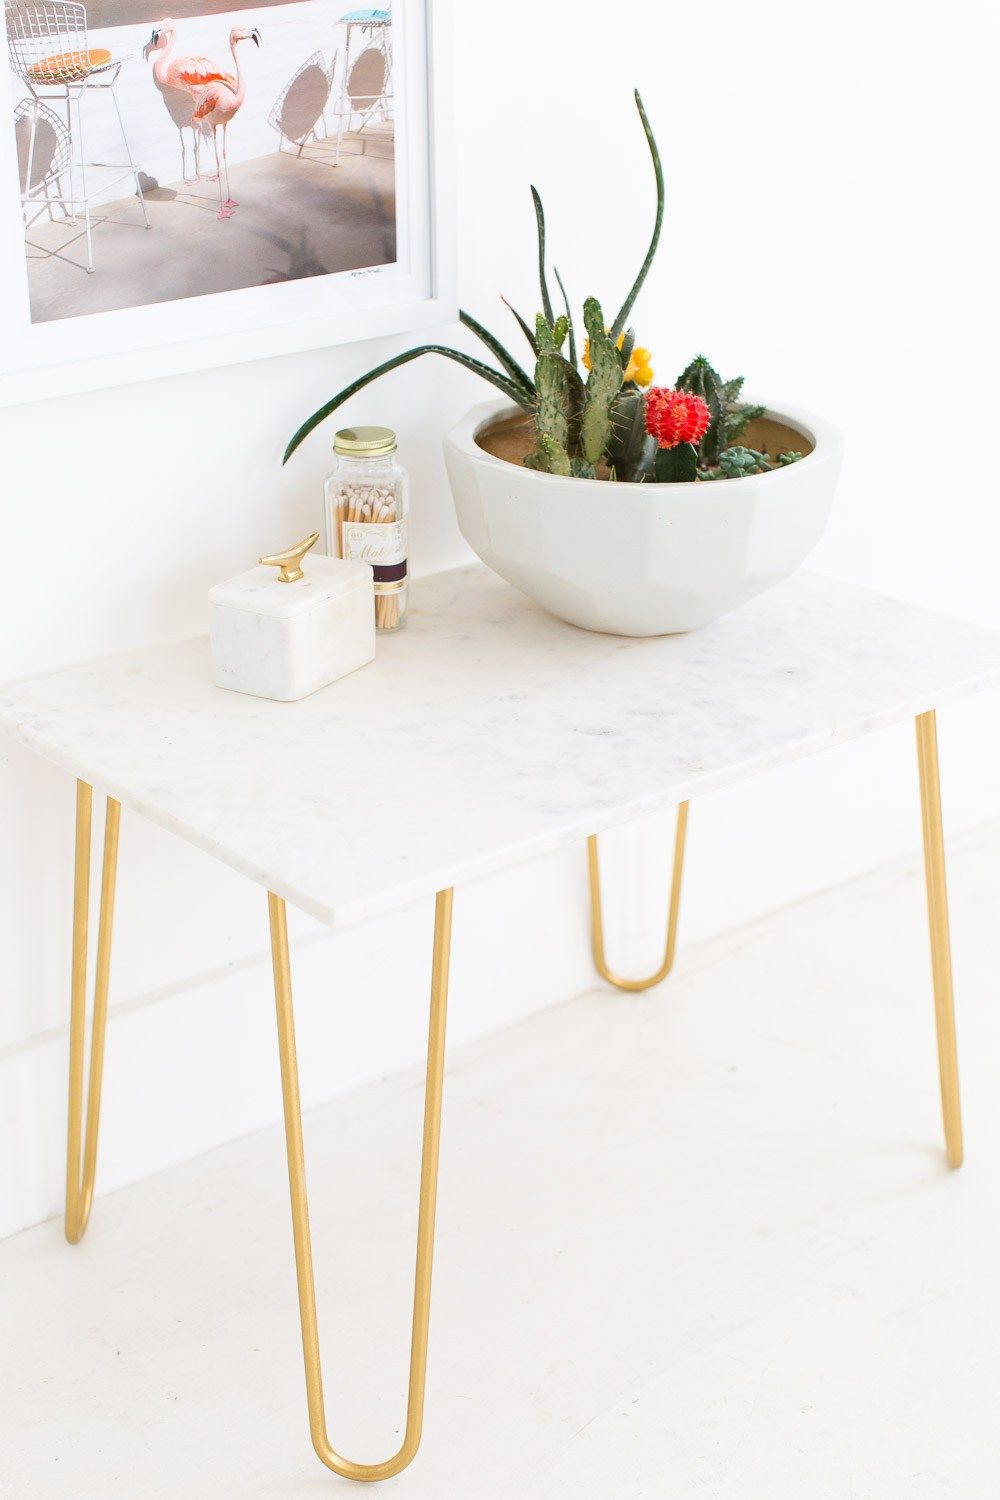 diy marble and gold side table sugar cloth home decor ideas accent commercial tablecloths glass chandelier grey living room furniture bunnings umbrella small oval end tablecloth